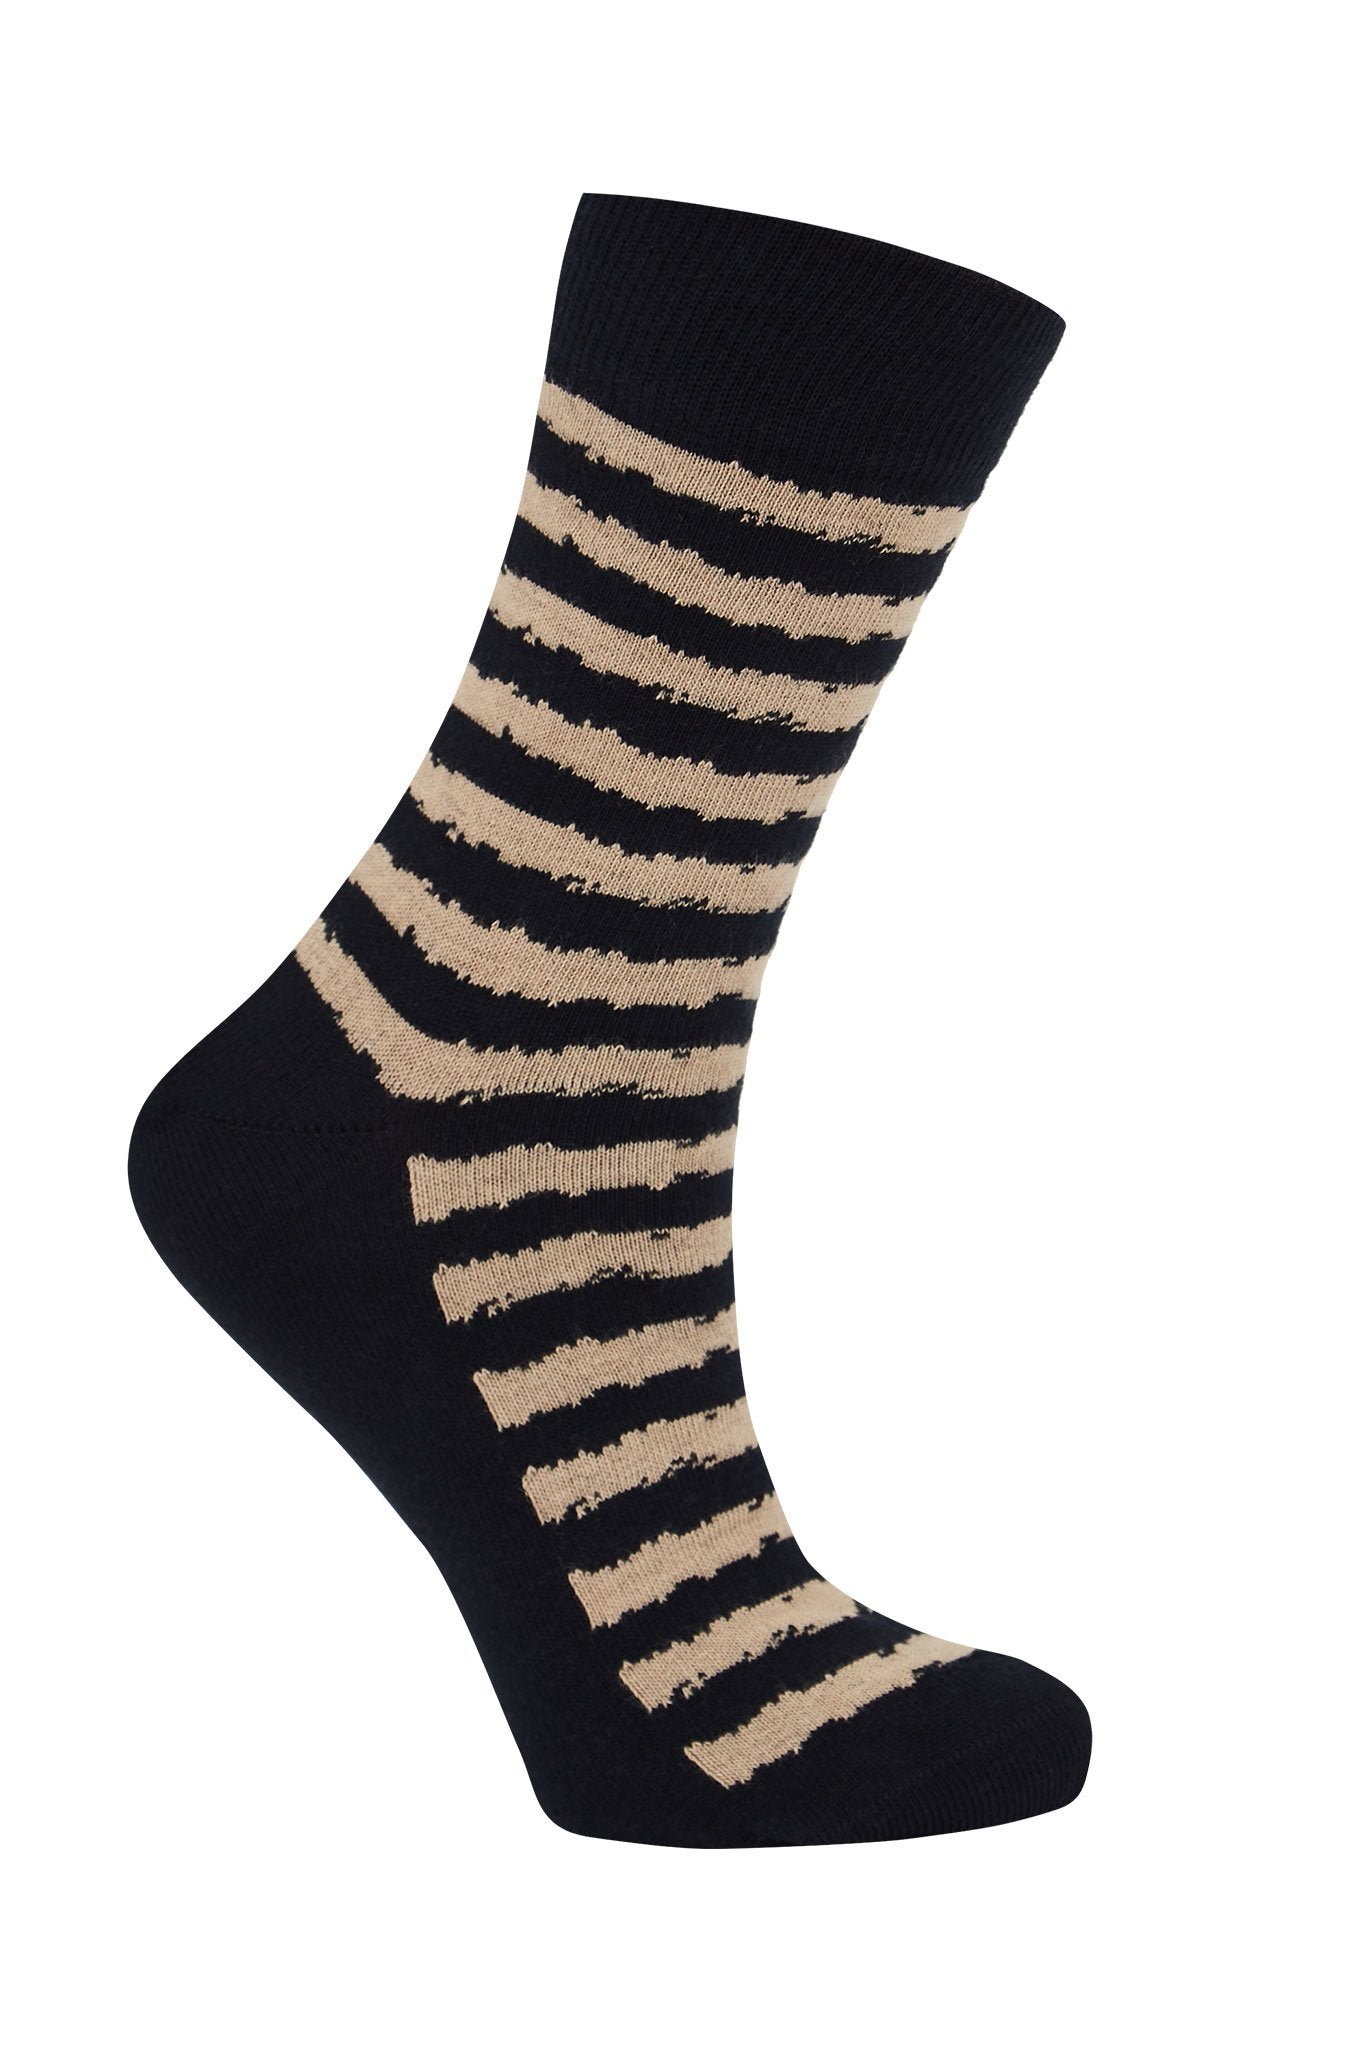 BROKEN BRETTON Ink - GOTS Organic Cotton Socks